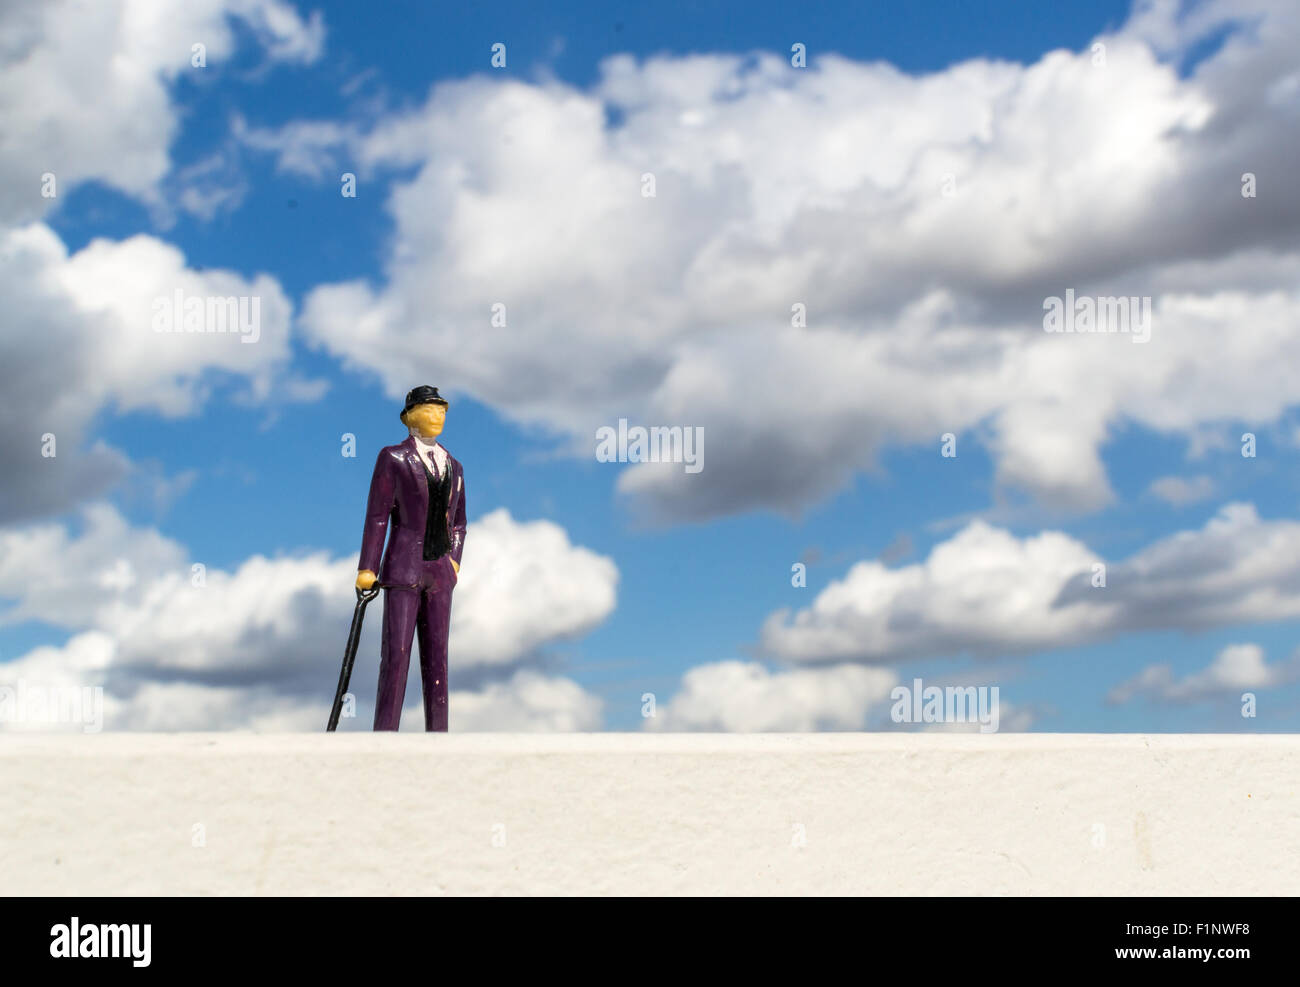 Single business man miniature toy wearing a formal purple suit and holding a walking stick against a cloudy blue - Stock Image